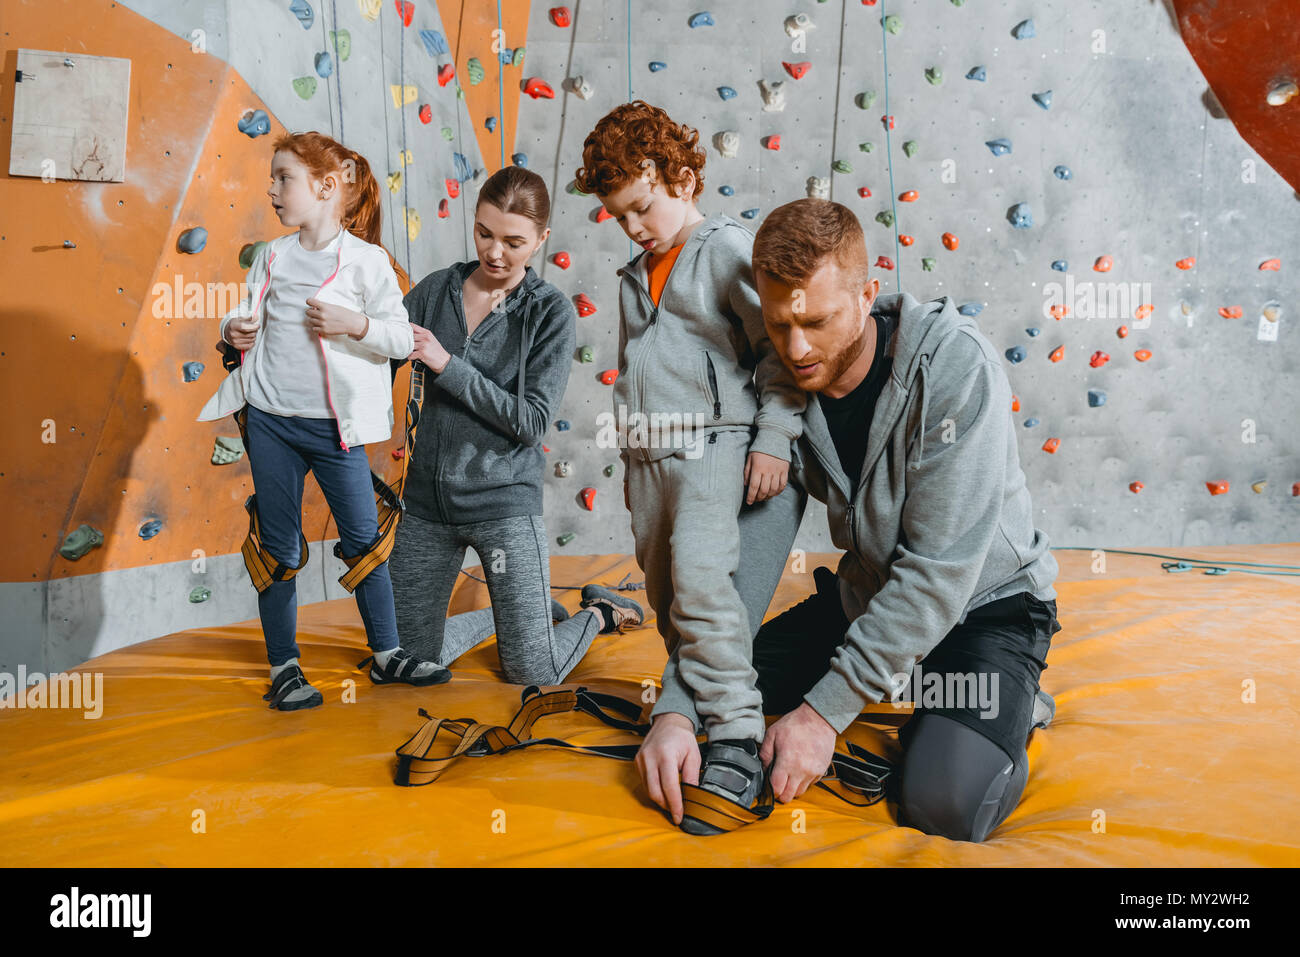 Parents securing their children in harnesses for climbing a wall with grips at gym - Stock Image